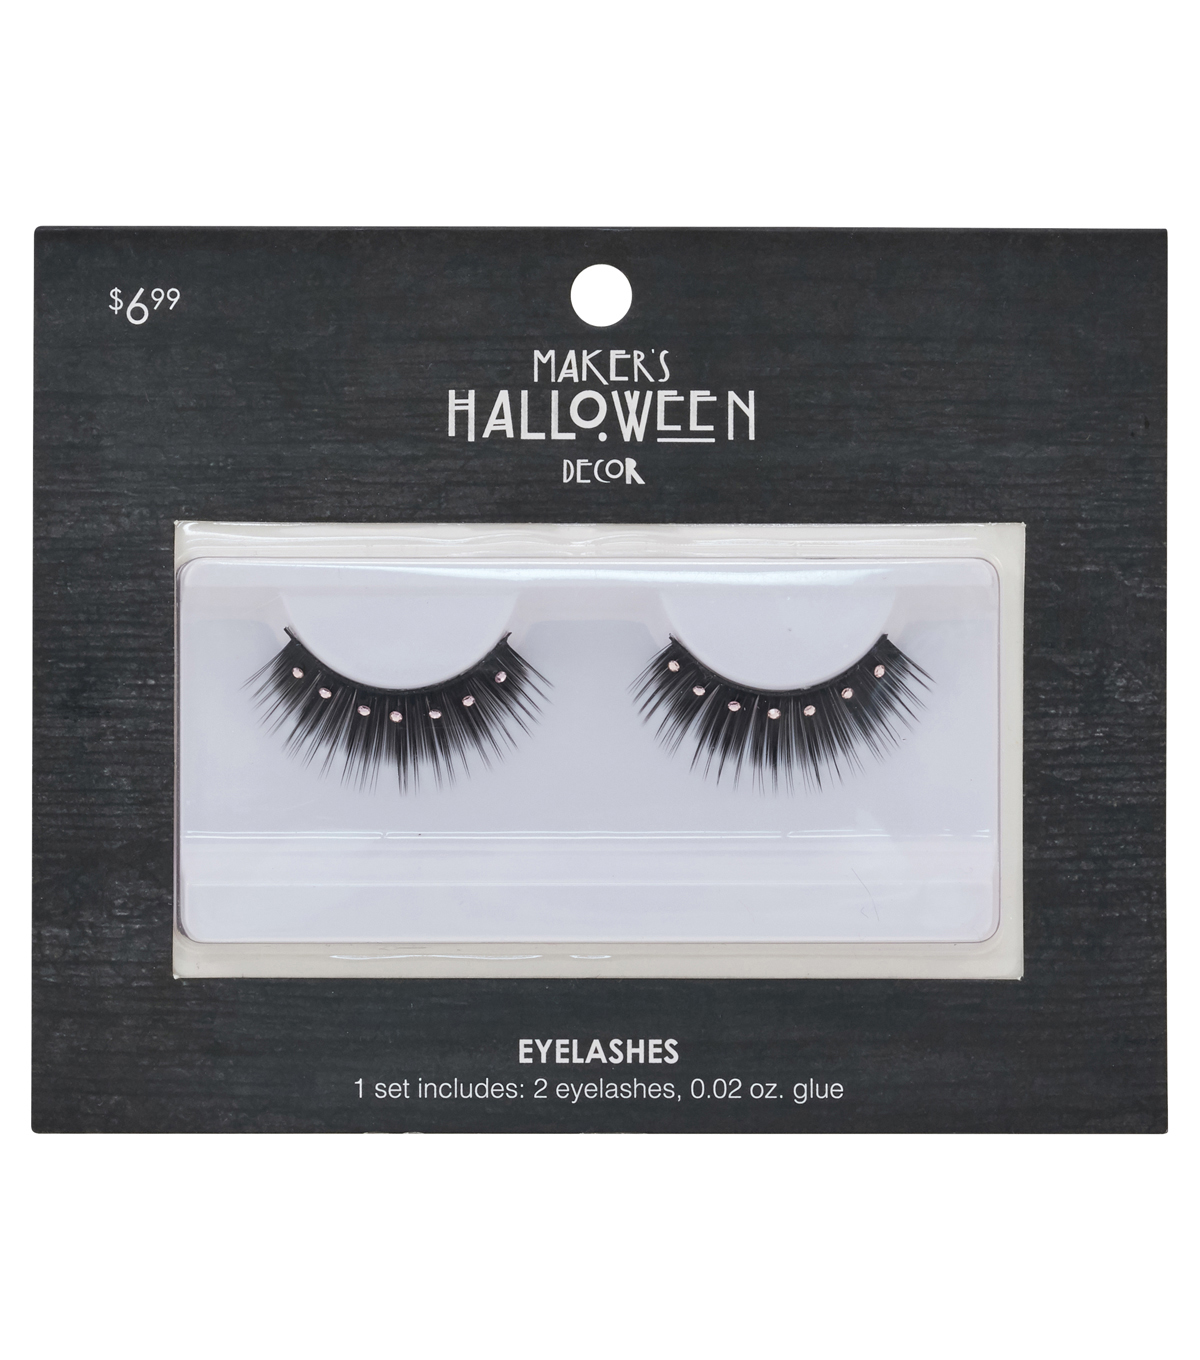 Makers Halloween Black Eyelashes With Pink Gemstones Glue Joann